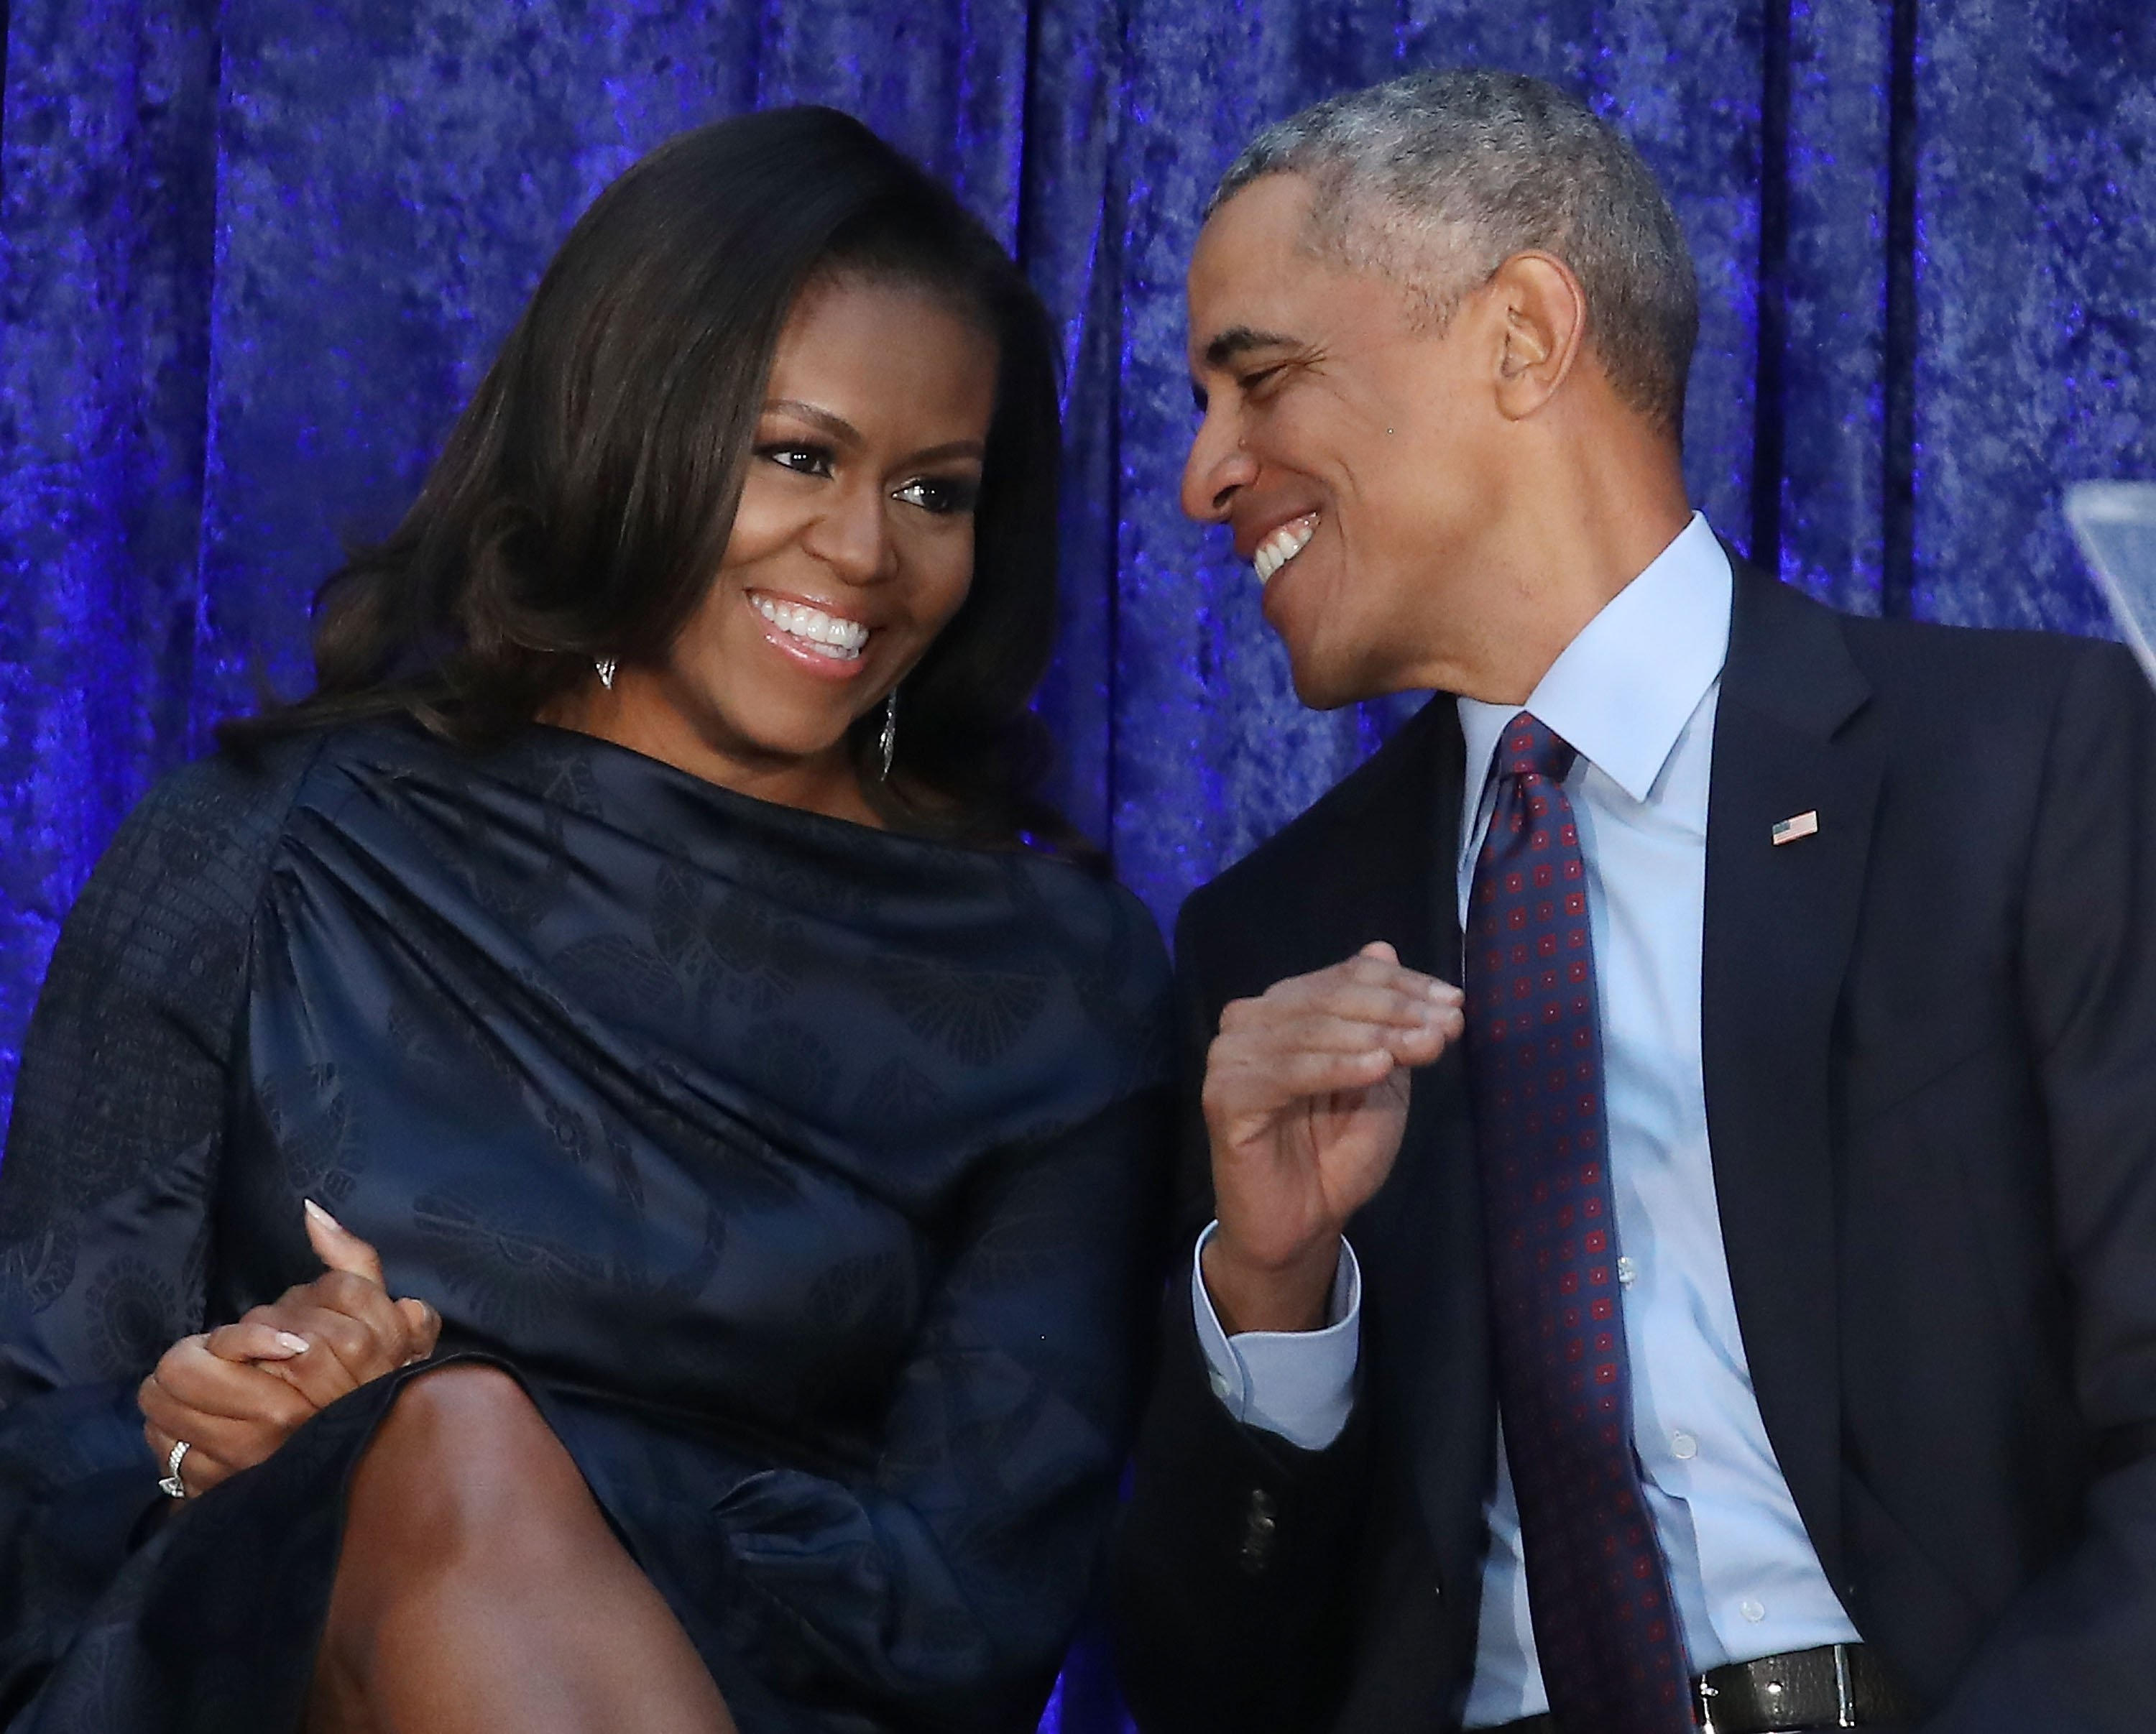 Former U.S. President Barack Obama and first lady Michelle Obama participate in the unveiling of their official portraits during a ceremony at the Smithsonian's National Portrait Gallery, on February 12, 2018, in Washington, DC.   Source: Getty Images.